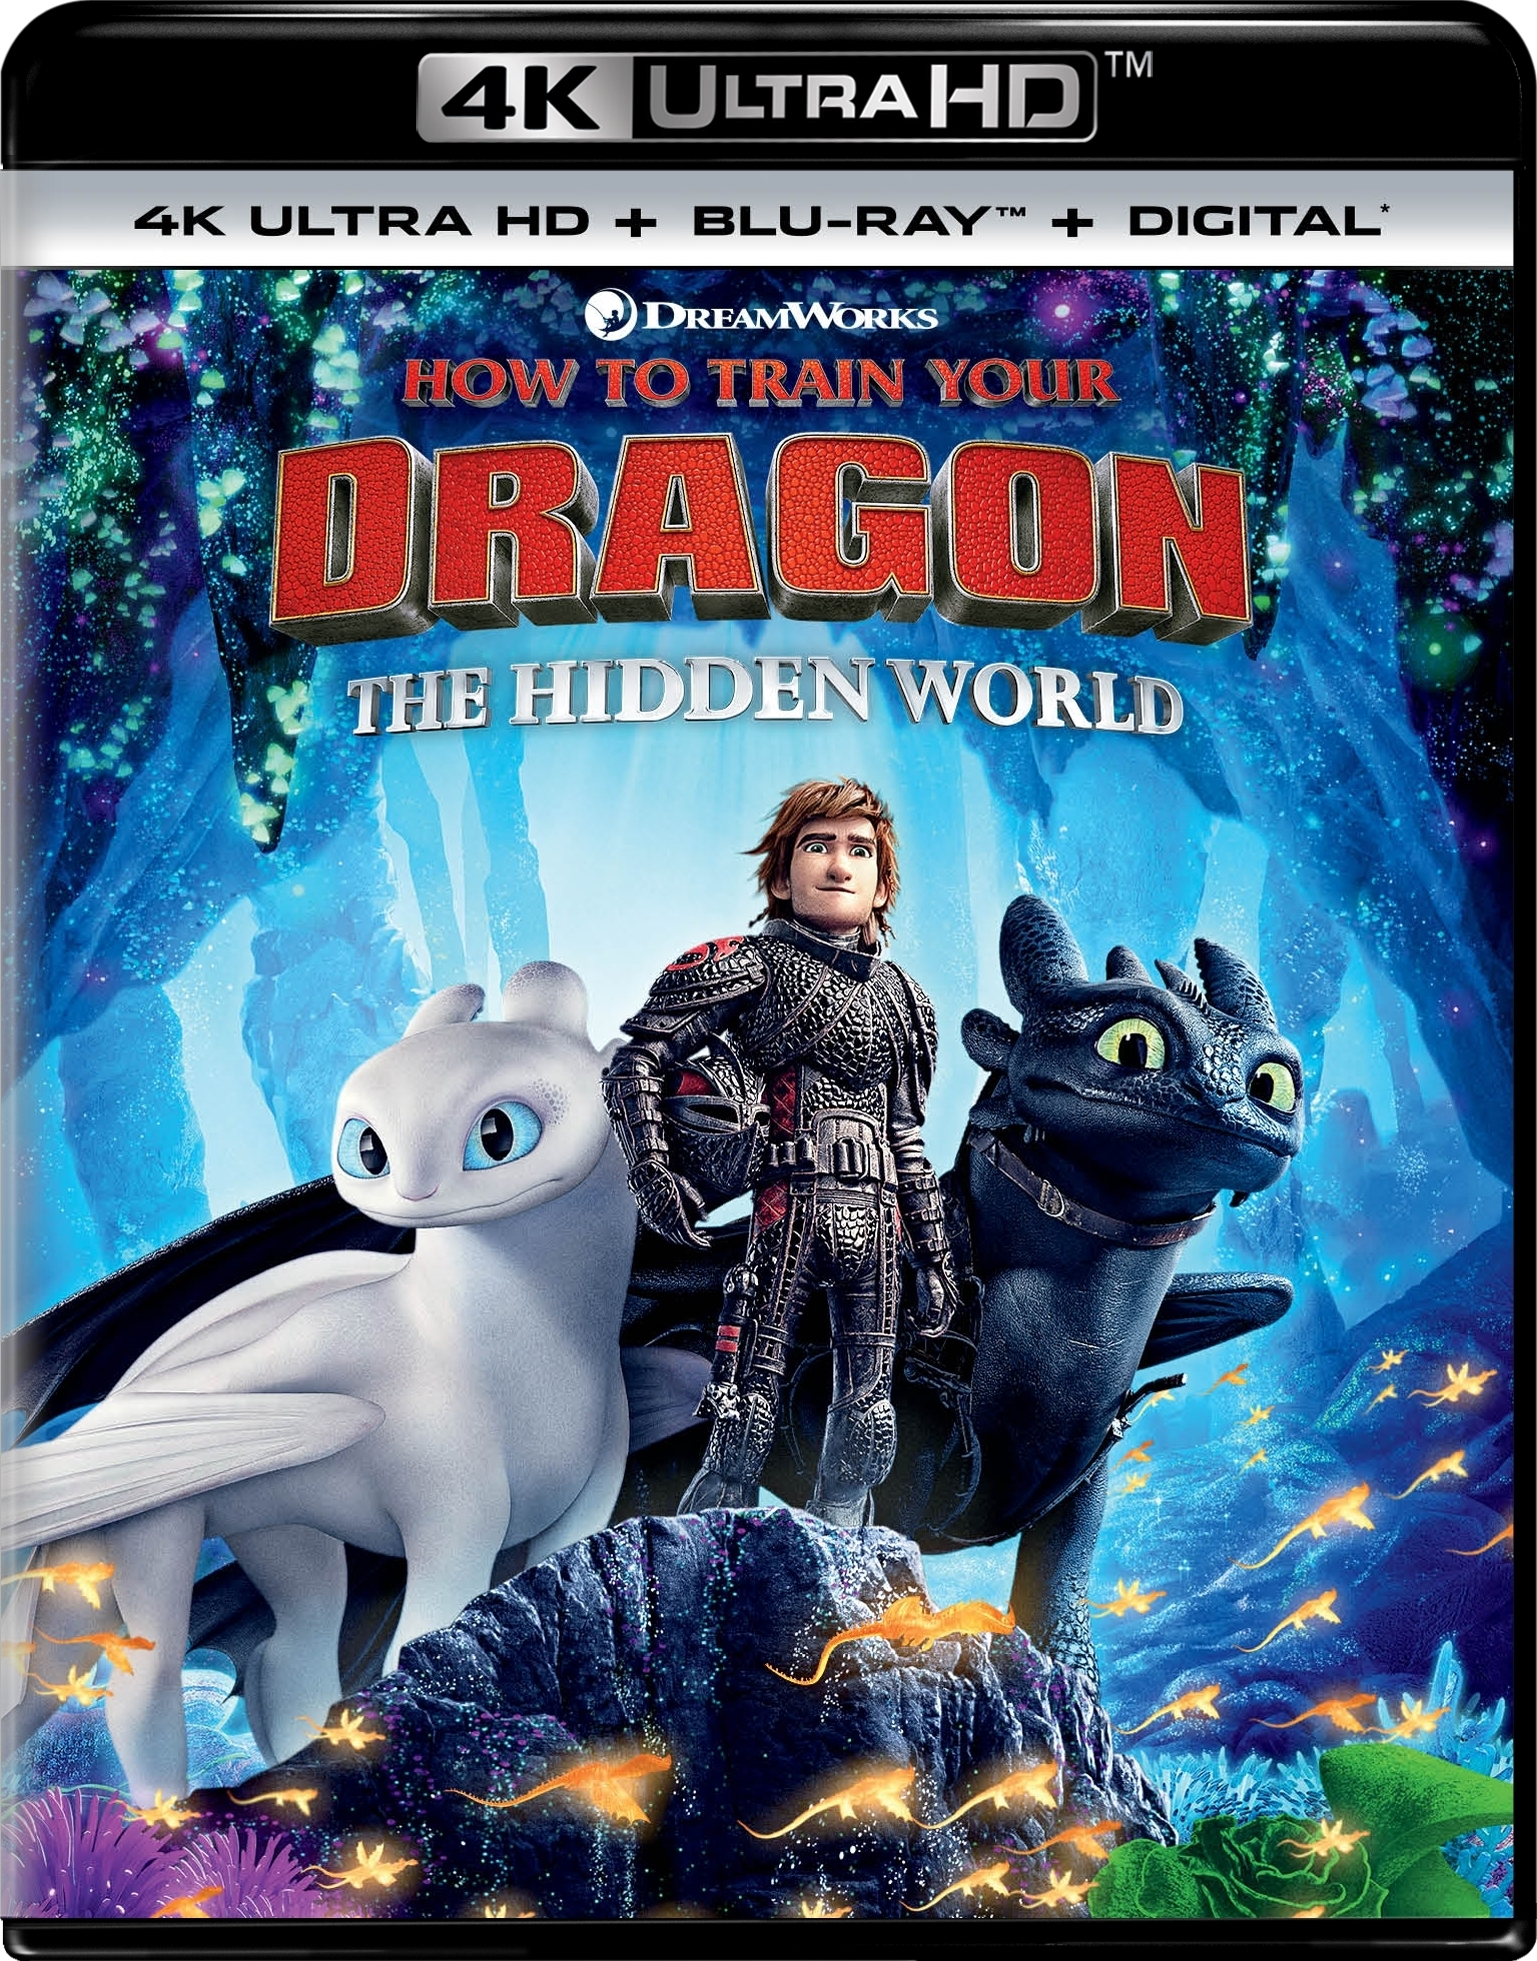 Download How to Train Your Dragon - The Hidden World (2019) 2160p HDR 10bi Torrent